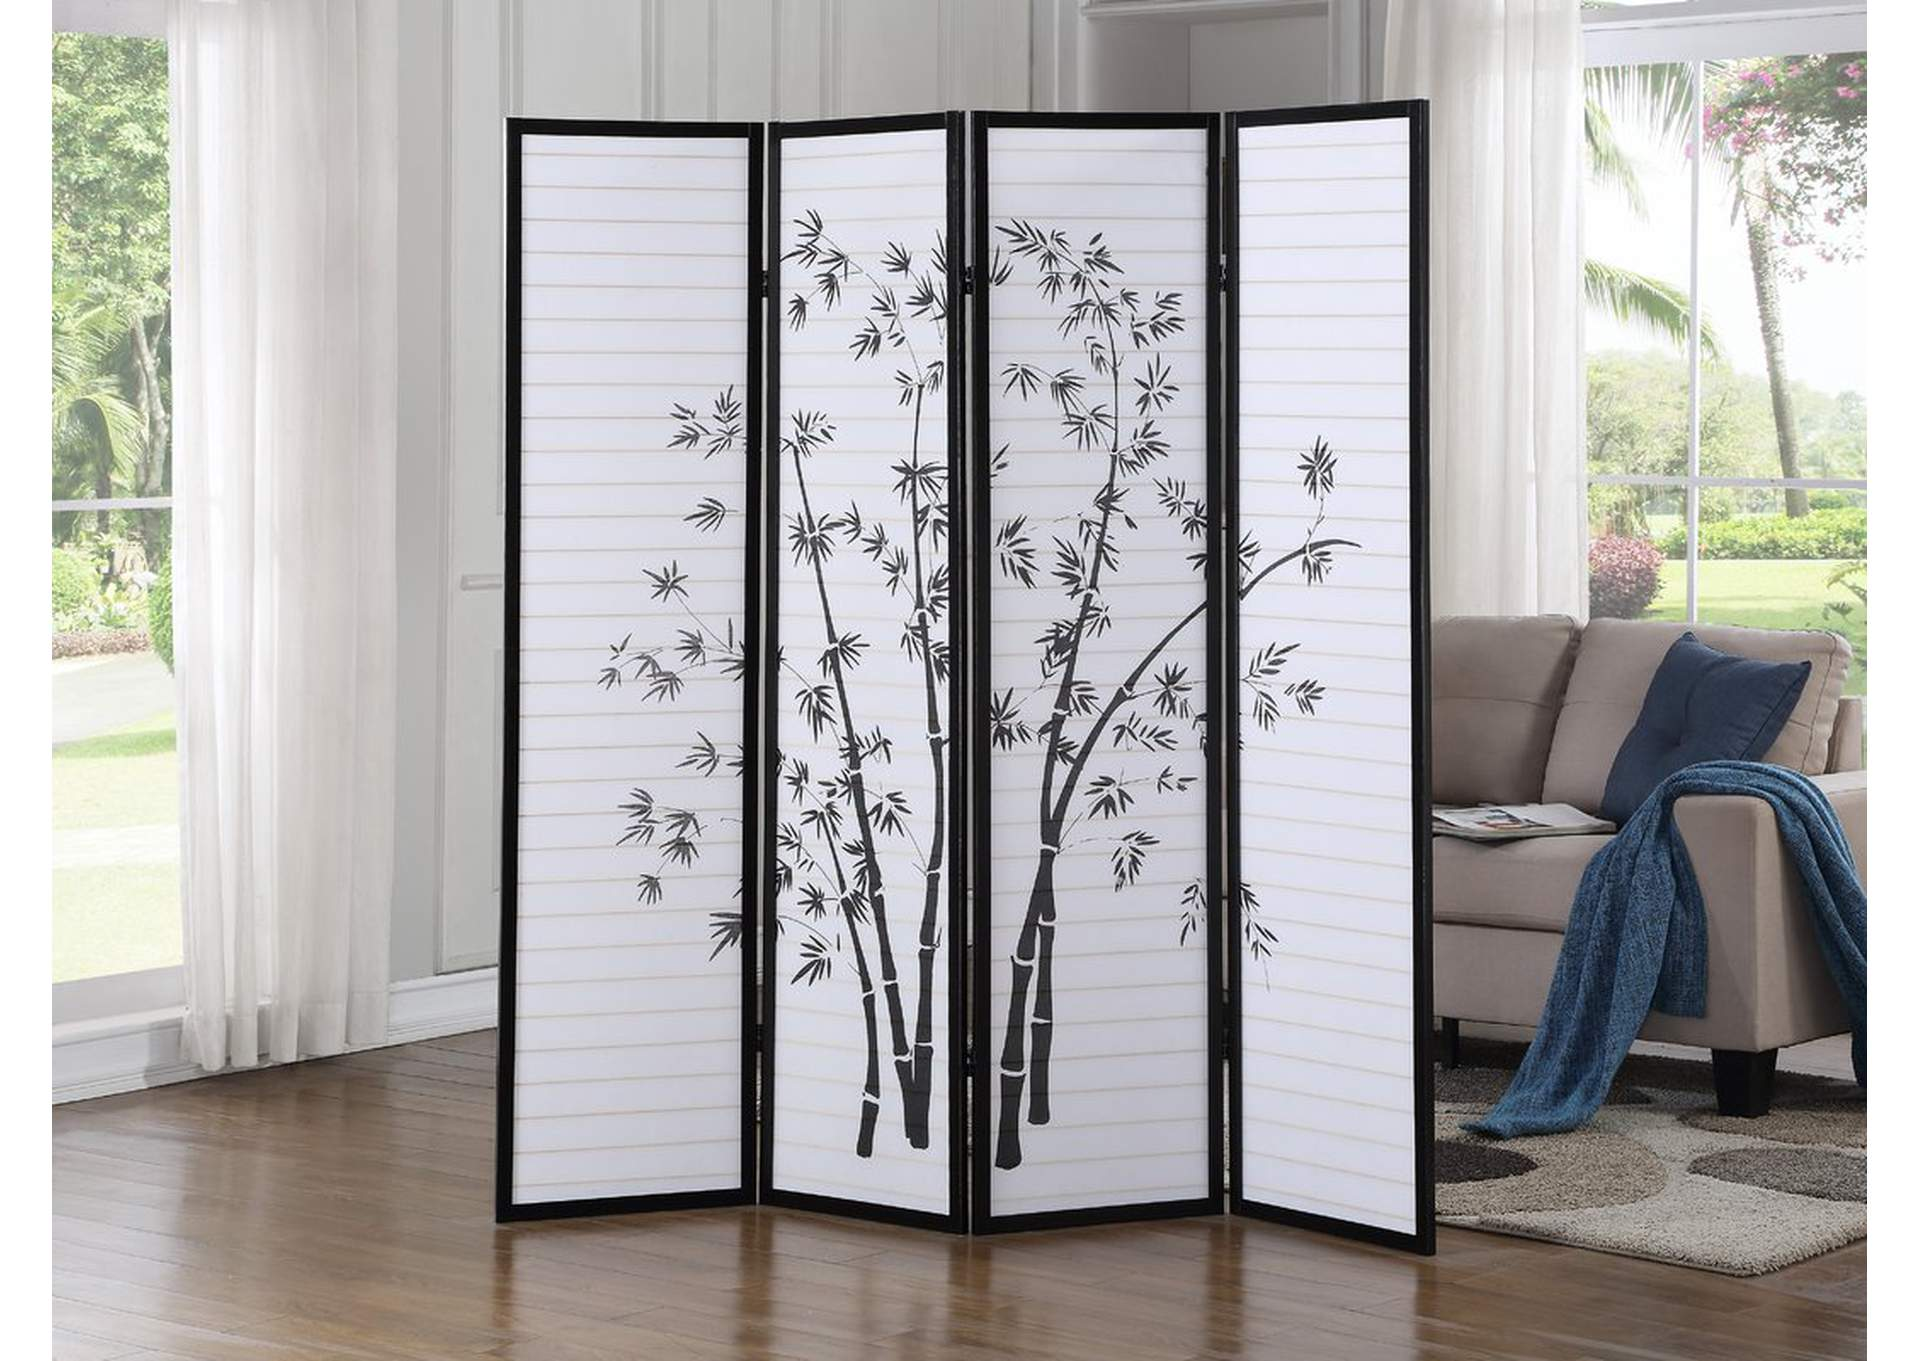 White & Black 4 Panel Screen W/ Bamboo Artwork,Global Trading